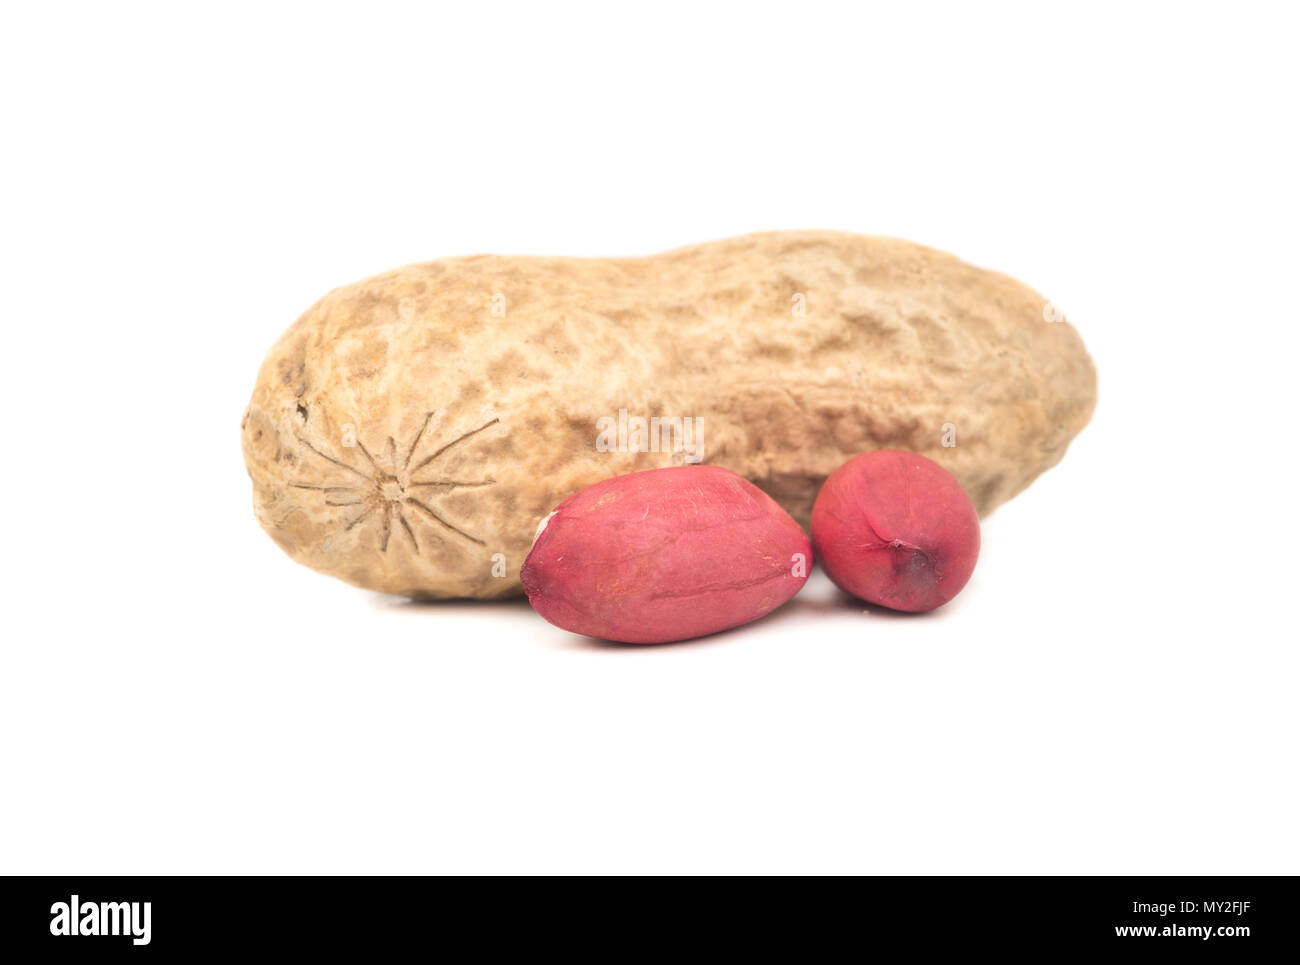 Peanut in shell with two cores on a white background - Stock Image